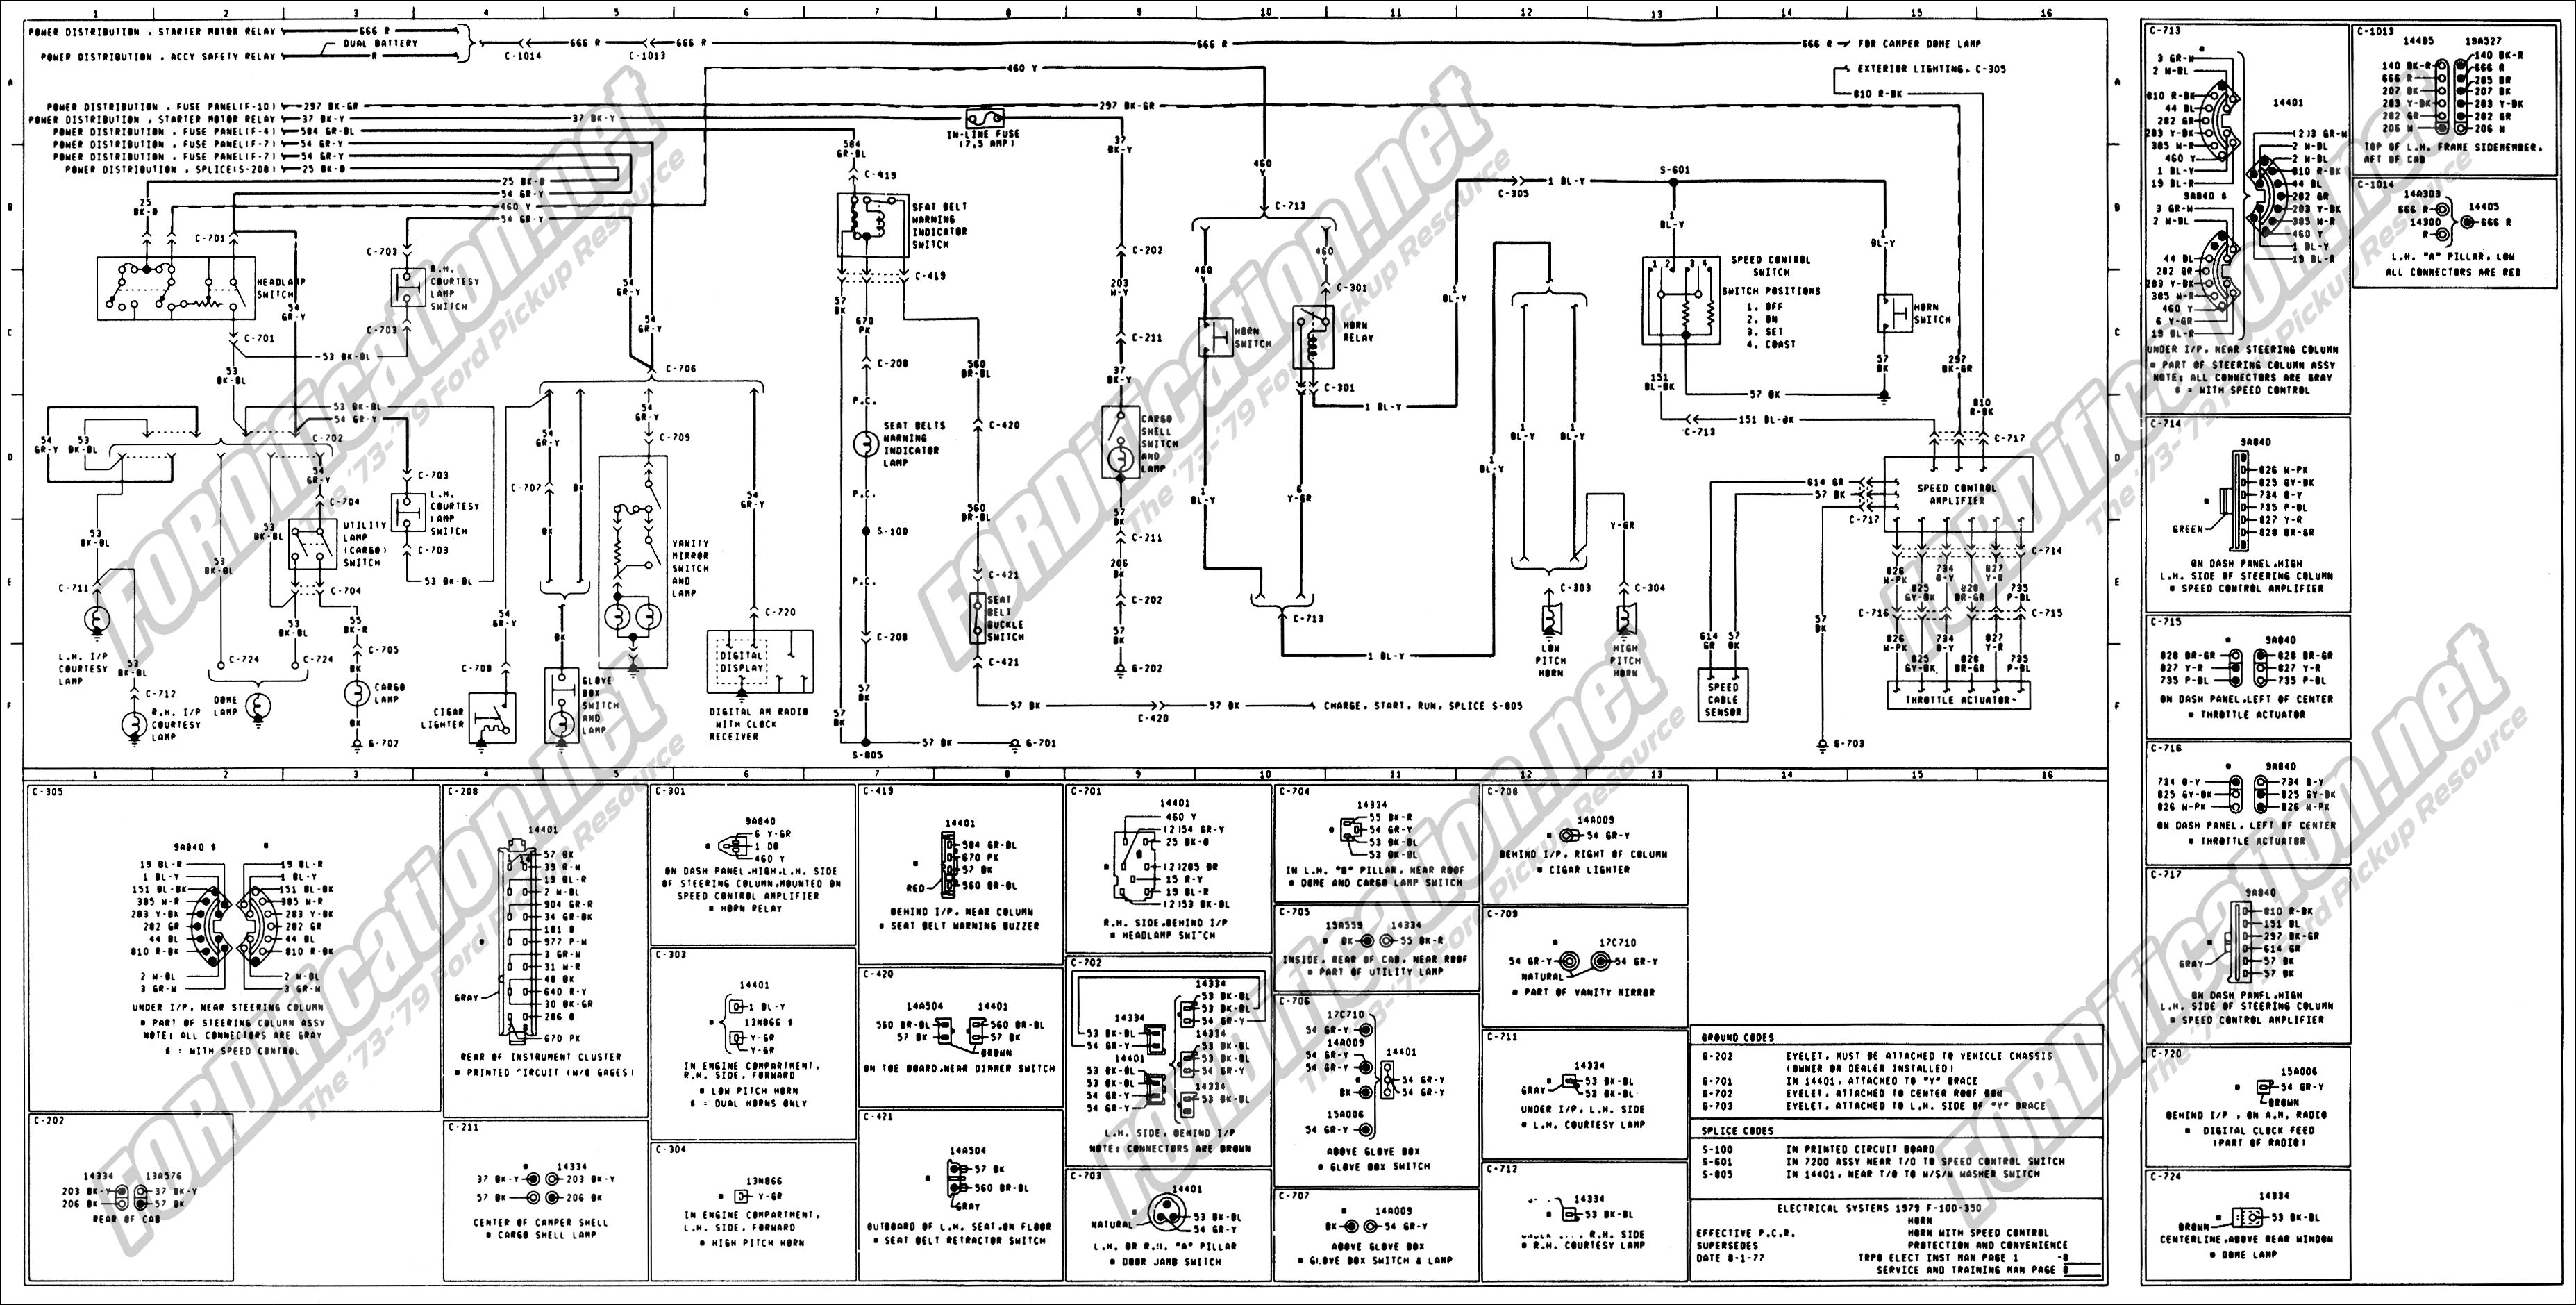 wiring_79master_8of9 1973 1979 ford truck wiring diagrams & schematics fordification net 1981 ford f100 wiring diagram at nearapp.co